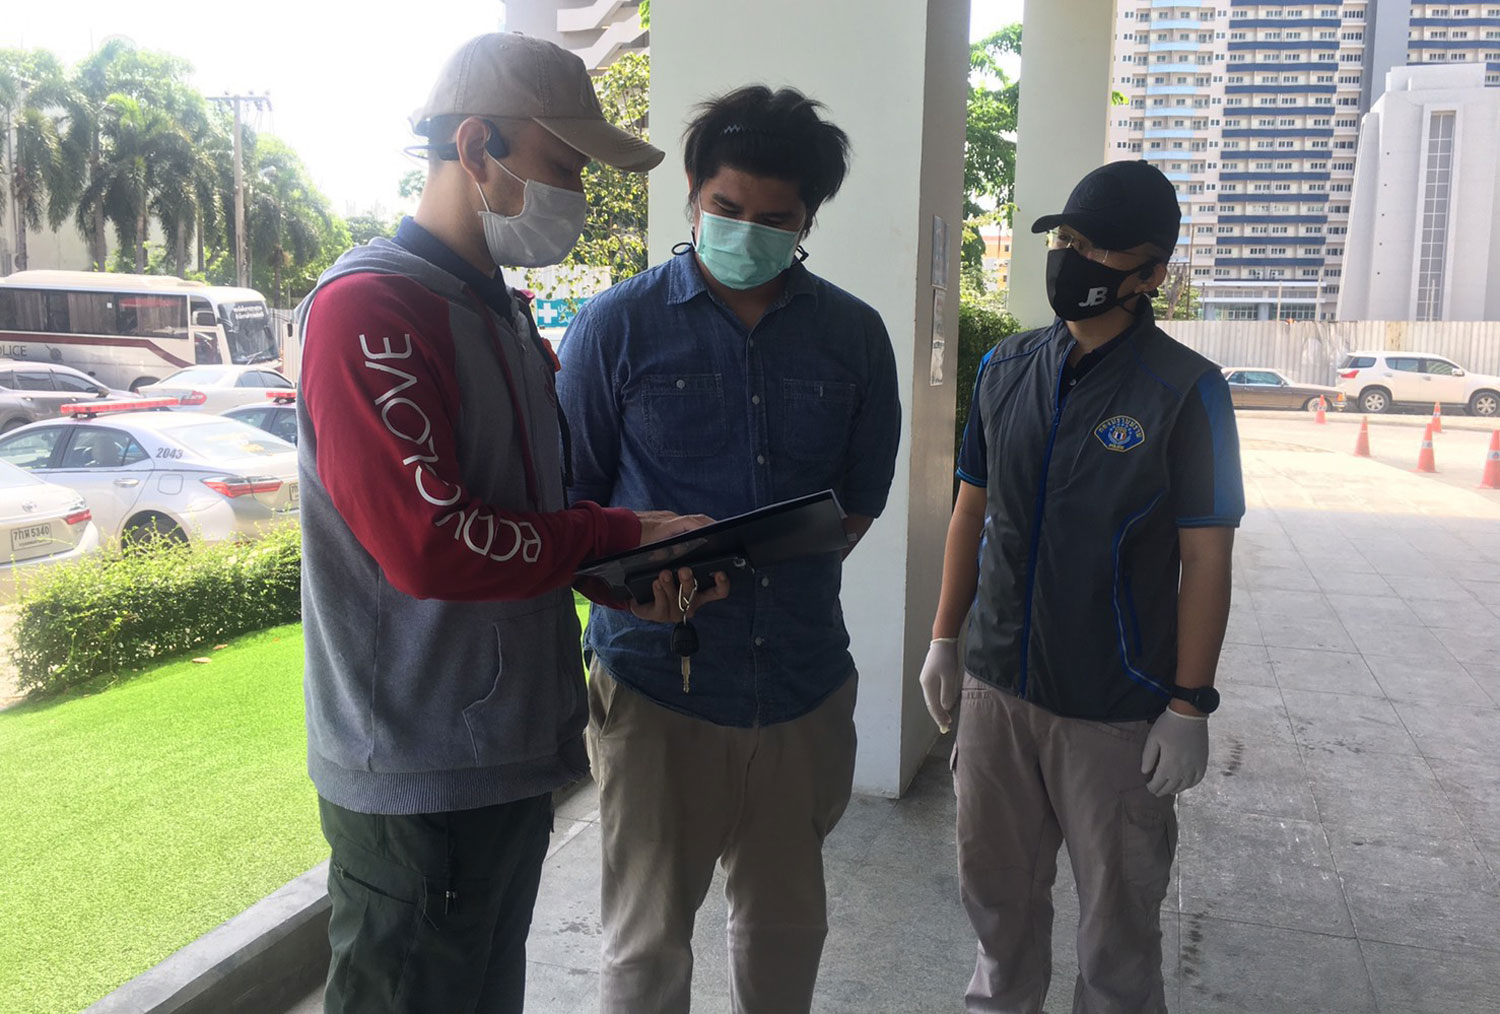 Ratchaphol Jinda, 26, a salesman in Samut Prakan, is shown an arrest warrant as Crime Suppression Division police take him into custody in the car park of a shopping mall in Bangkok on Wednesday. (Photo supplied/Wassayos Ngamkham)